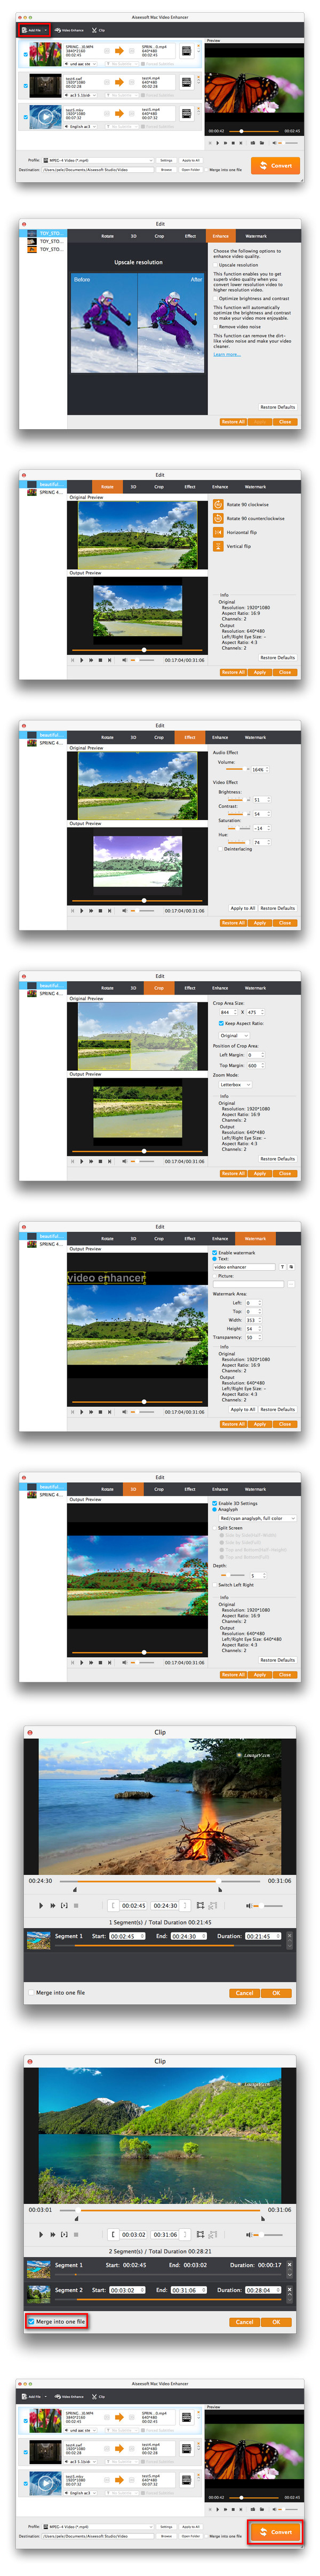 aiseesoft_mac_video_enhancer_1016